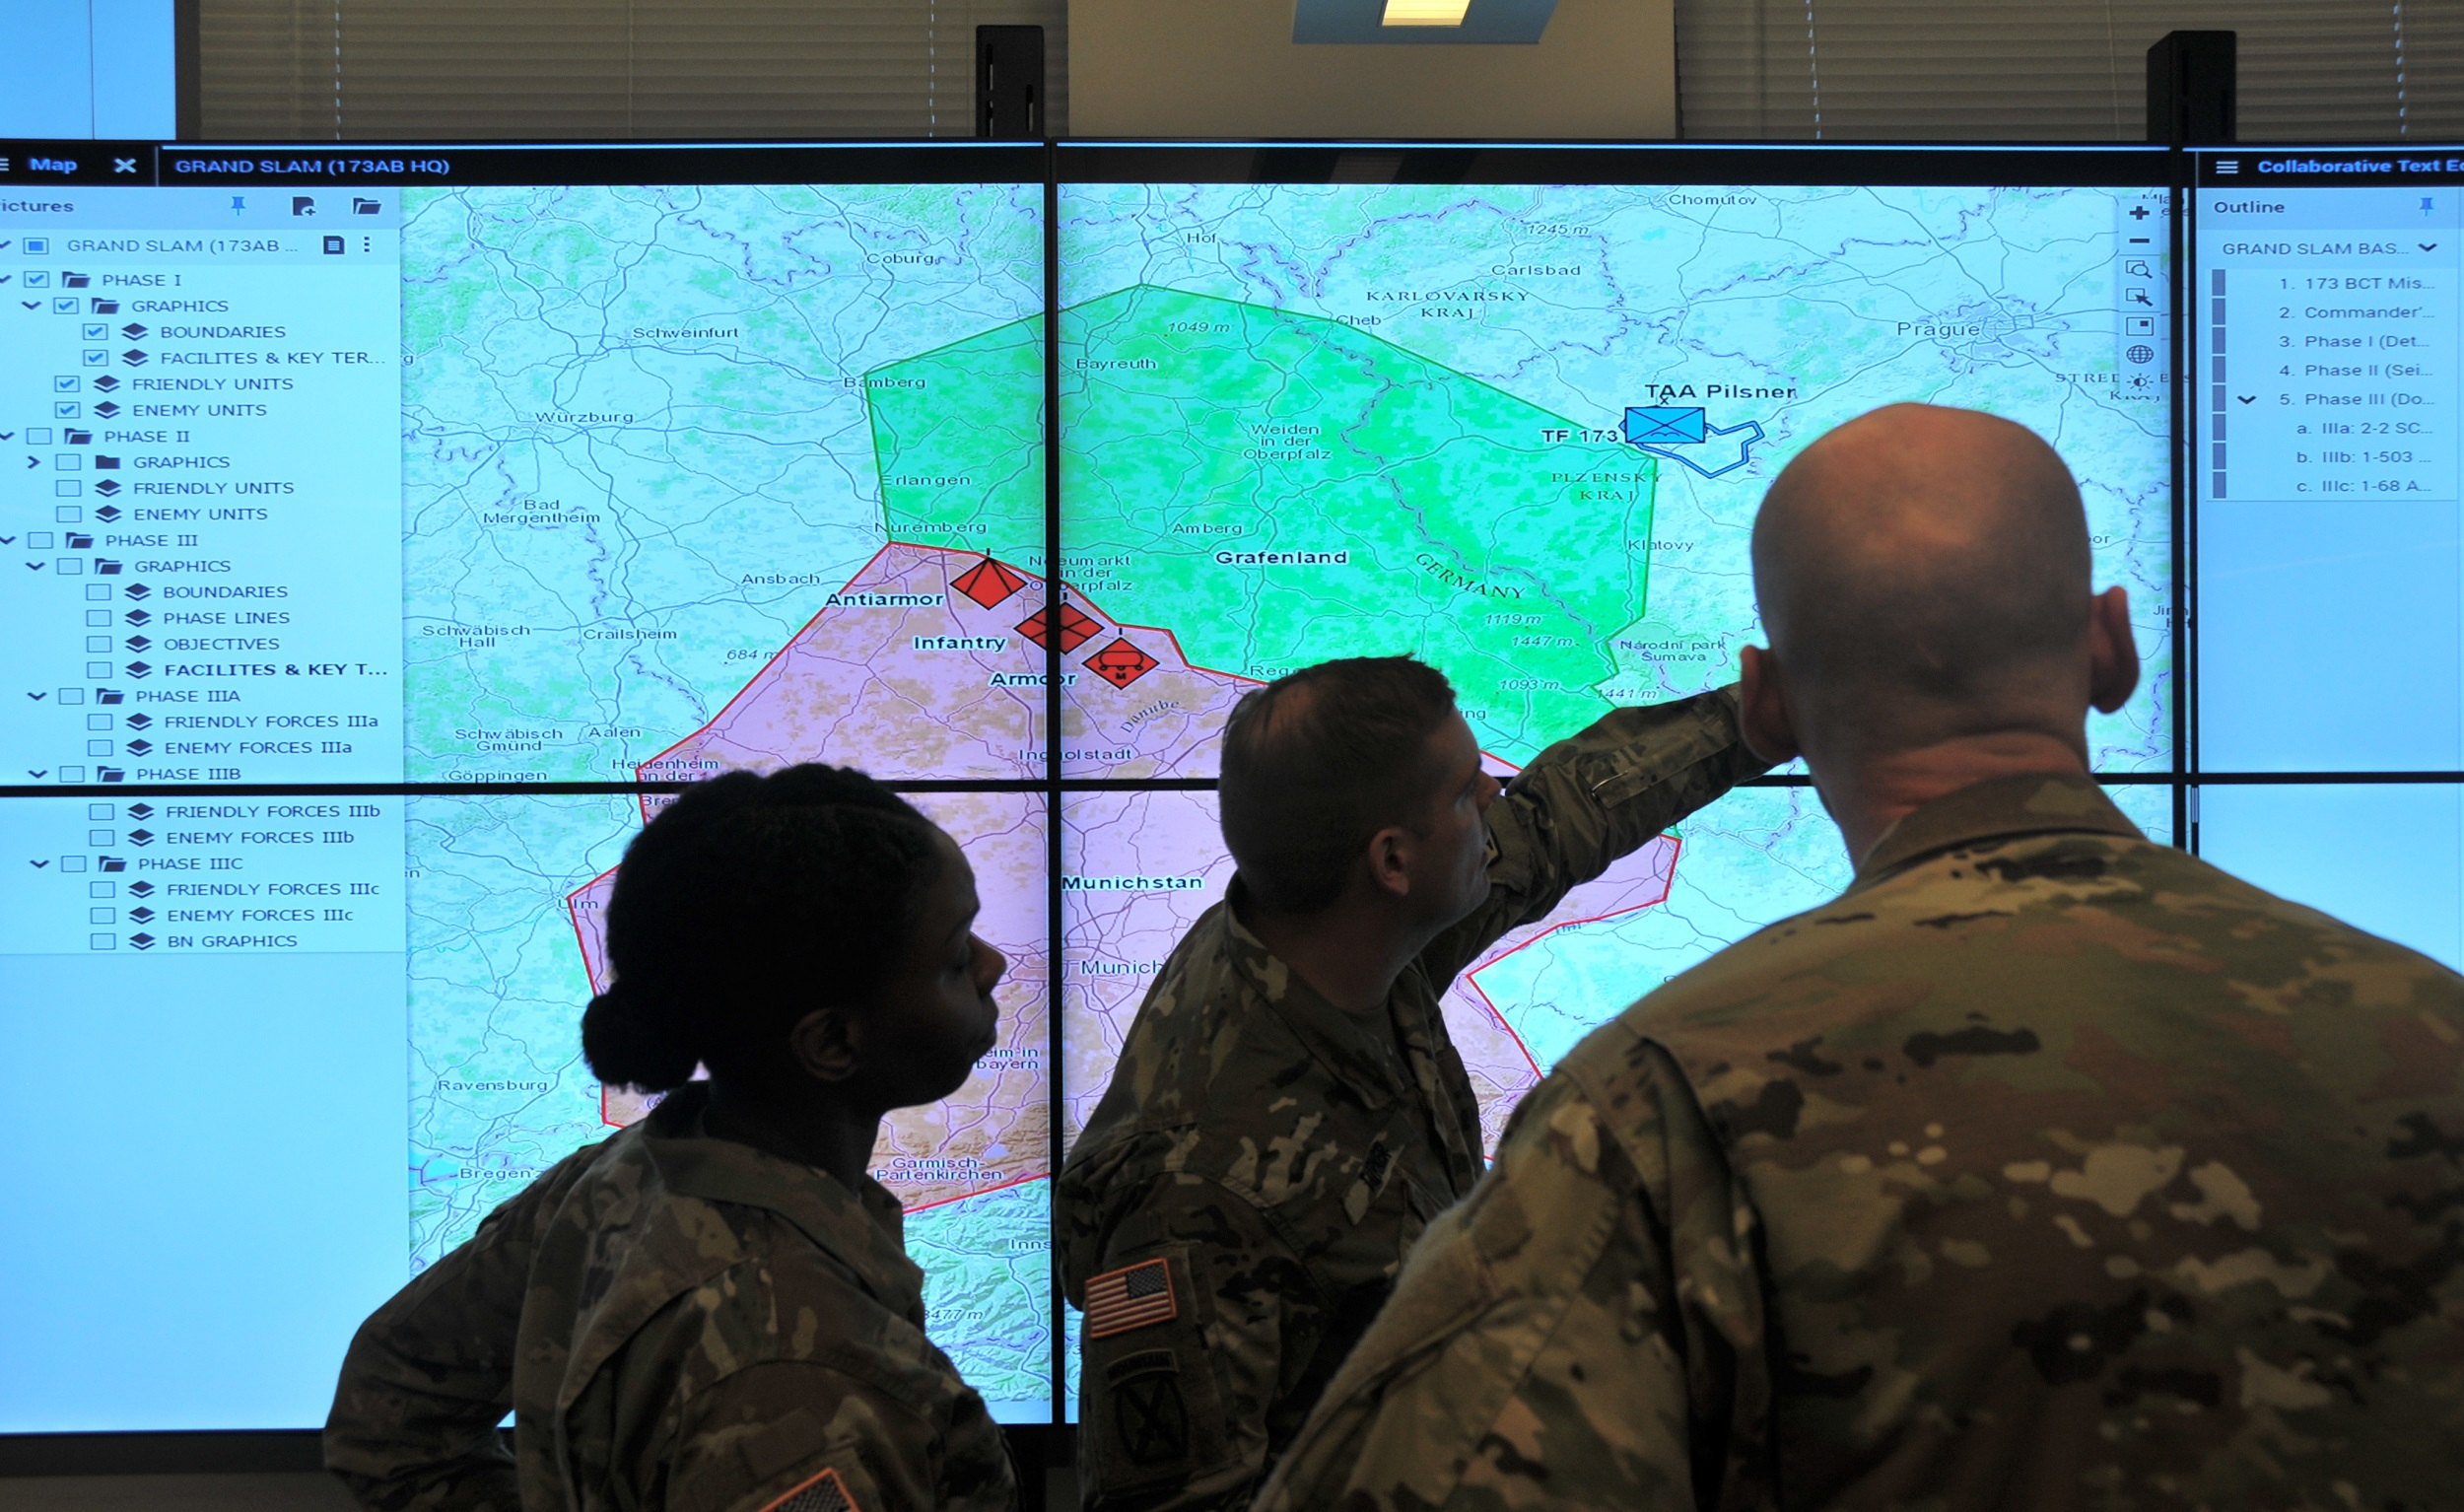 Soldiers demonstrate the Command Post Computing Environment prototype at Aberdeen Proving Ground, Maryland, on May 16, 2017. The CP CE infrastructure, consisting of a new single tactical server infrastructure plus a common software baseline, will provide Soldiers an underlying core CP system upon which additional warfighting functionality can be built. (U.S. Army photo by Dan Lafontaine)